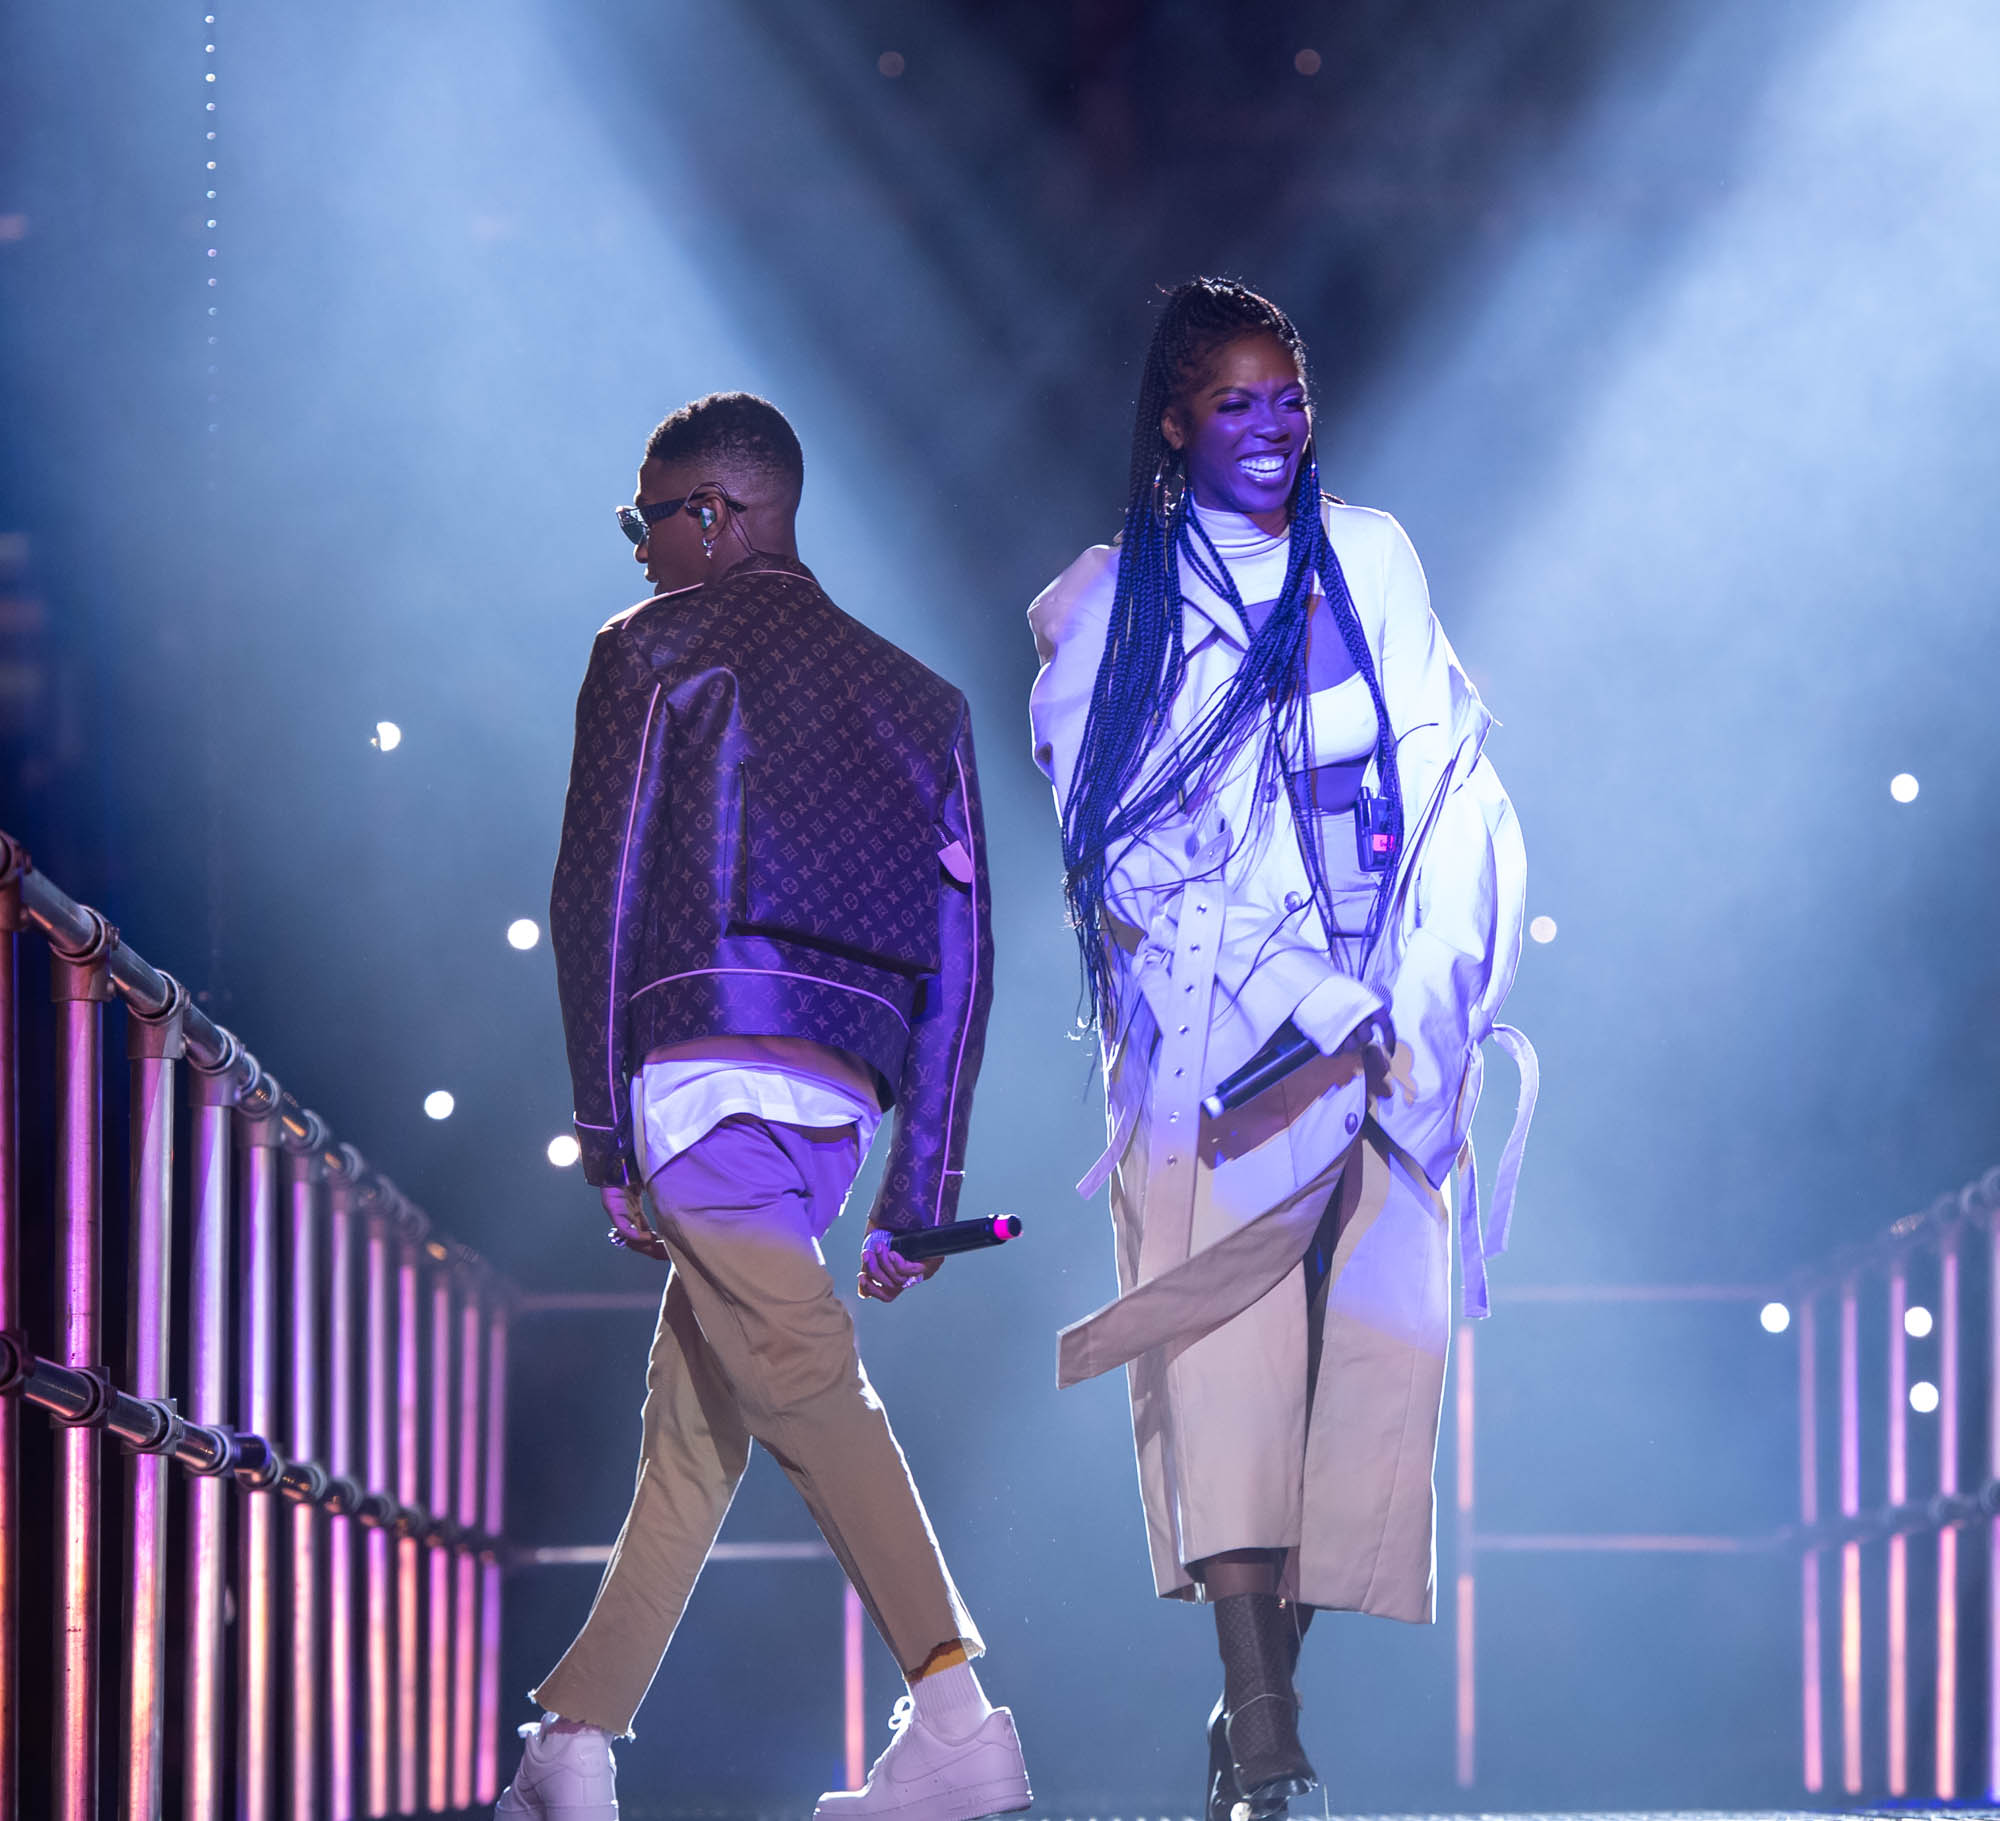 London, United Kingdom. 19th October 2019.  Wizkid & Tiwa performing live at starboy fest at The 02 Arena. Photographed by Michael Tubes